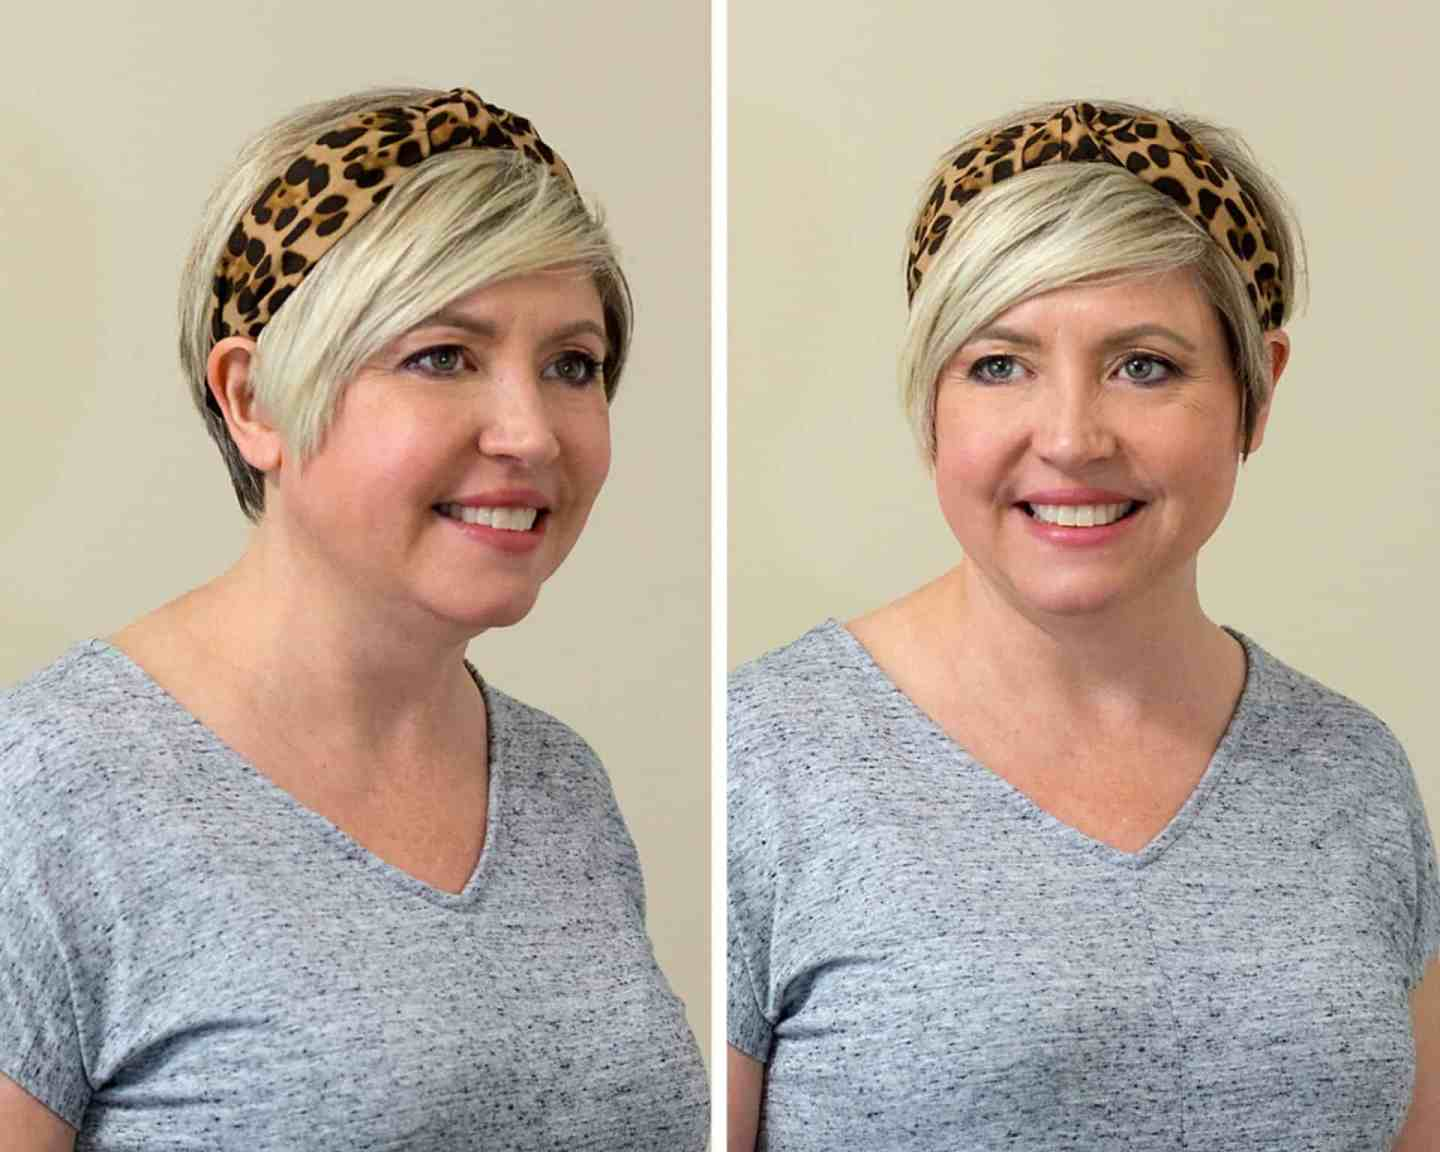 leopard headband on pixie cut